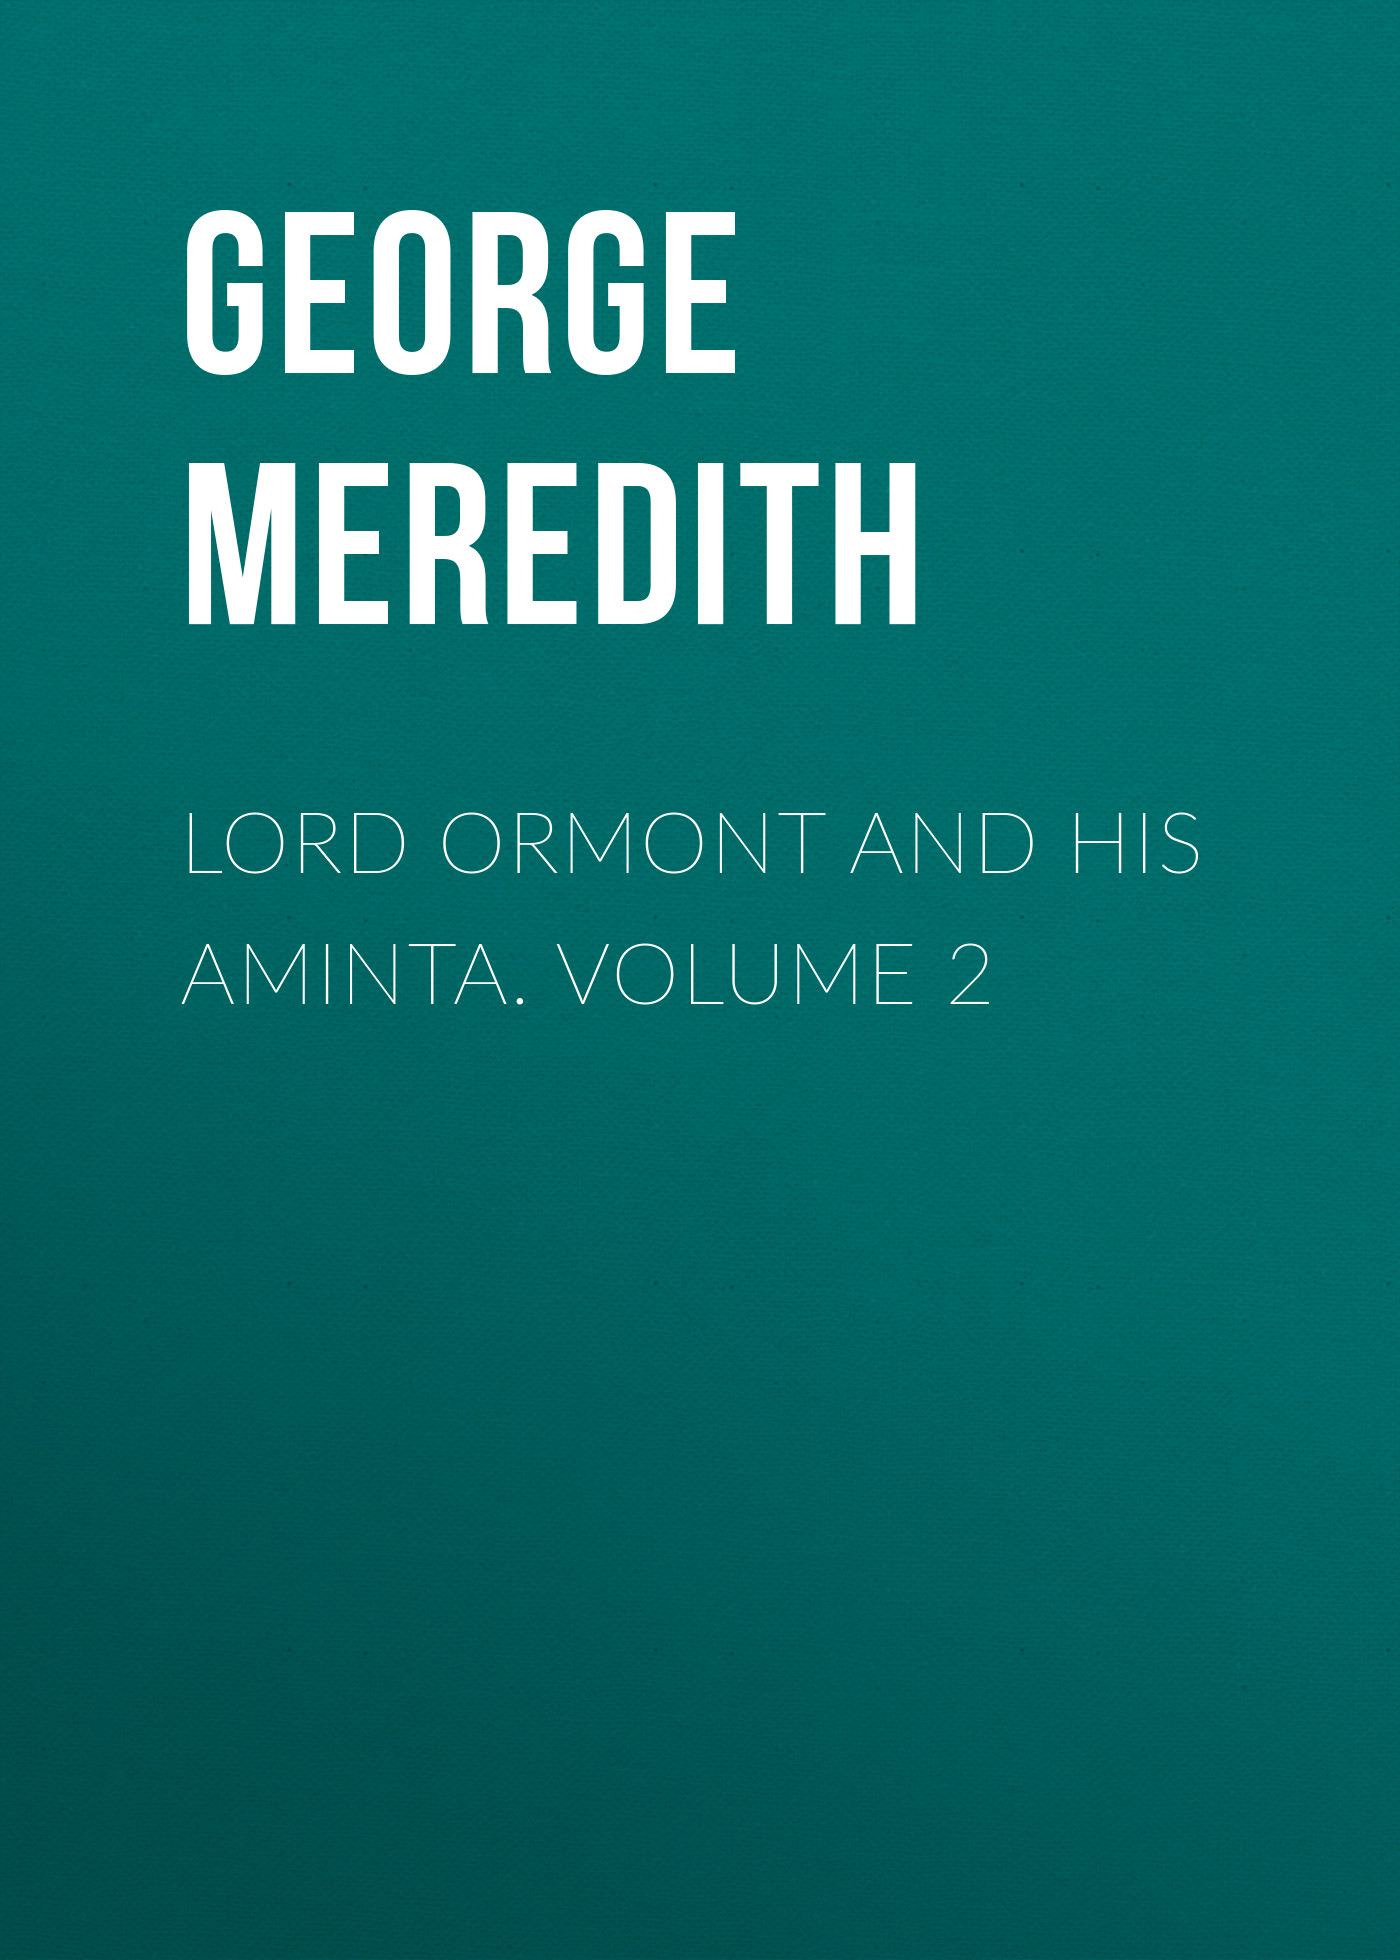 George Meredith Lord Ormont and His Aminta. Volume 2